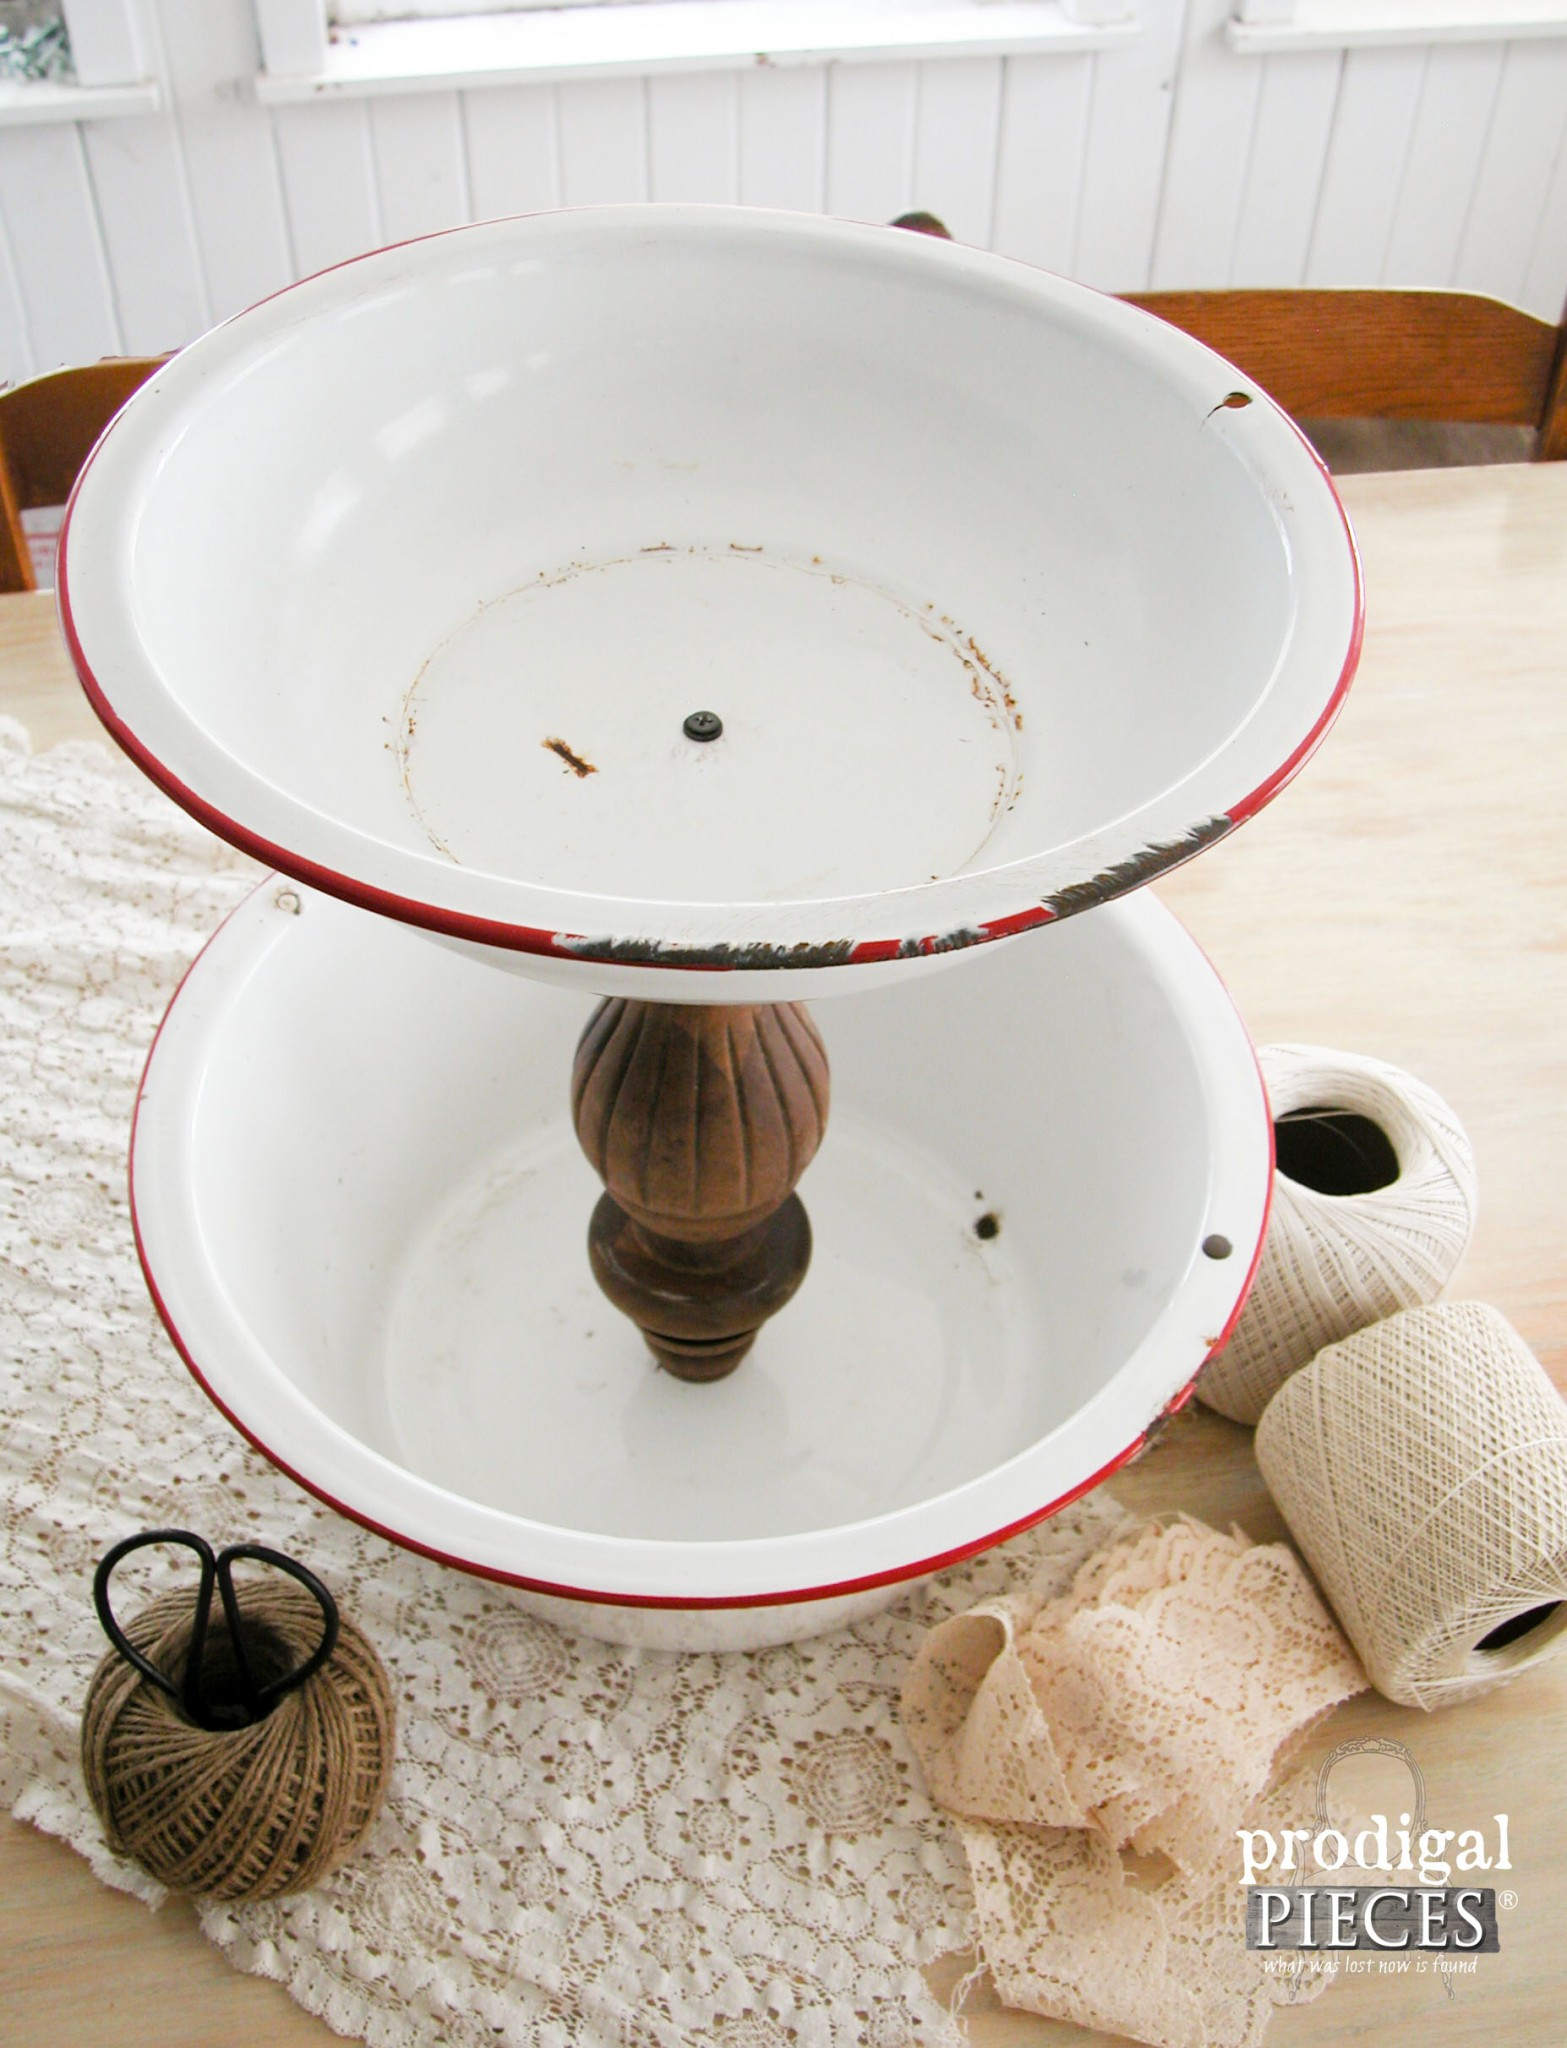 Red and White Enamelware Basin Repurposed into Stand by Prodigal Pieces | www.prodigalpieces.com